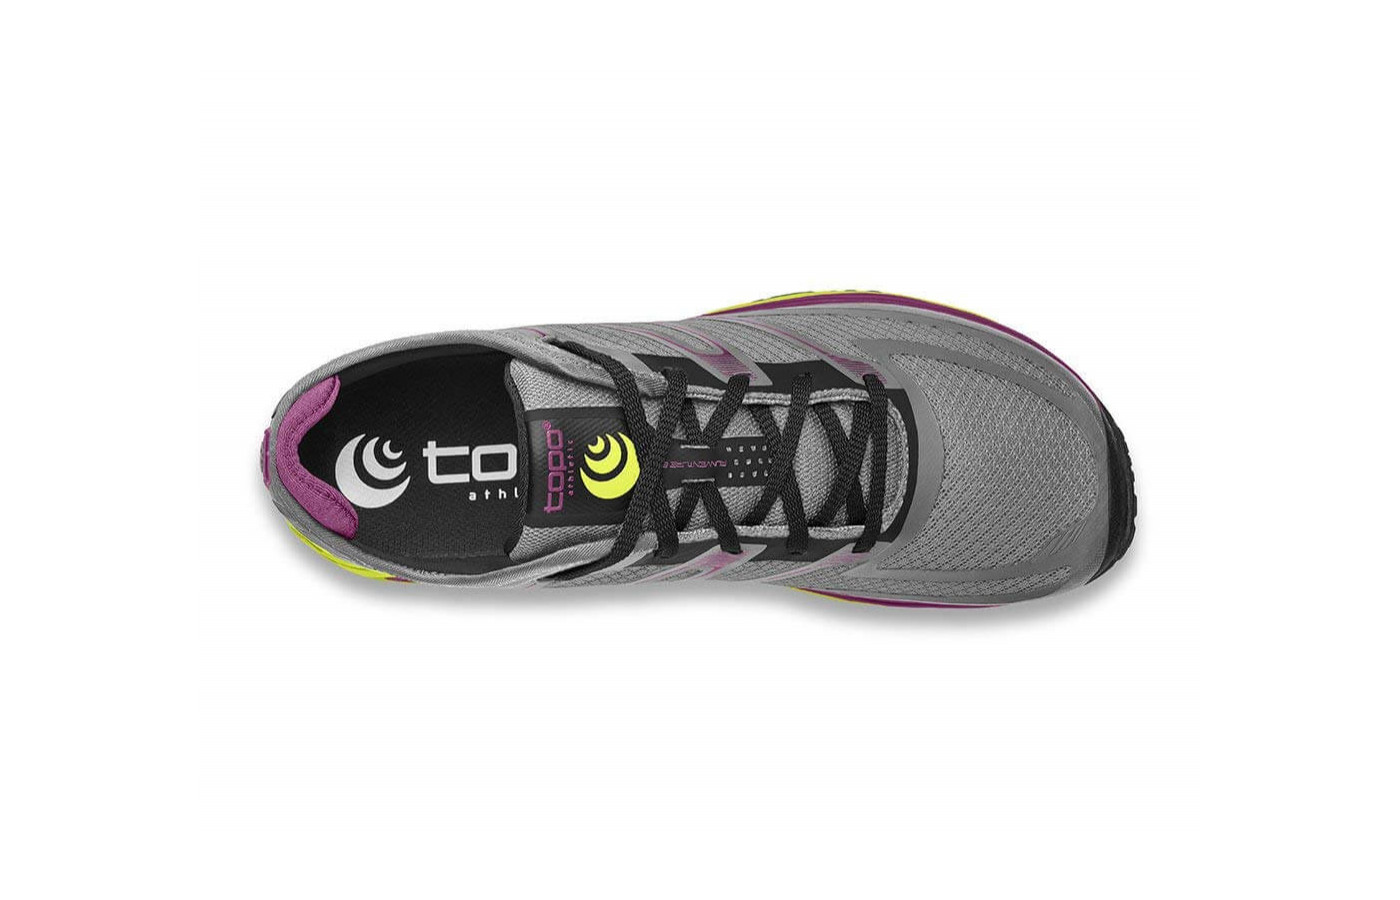 The Runventure 2 Anatomical Toe Box allows extra toe room